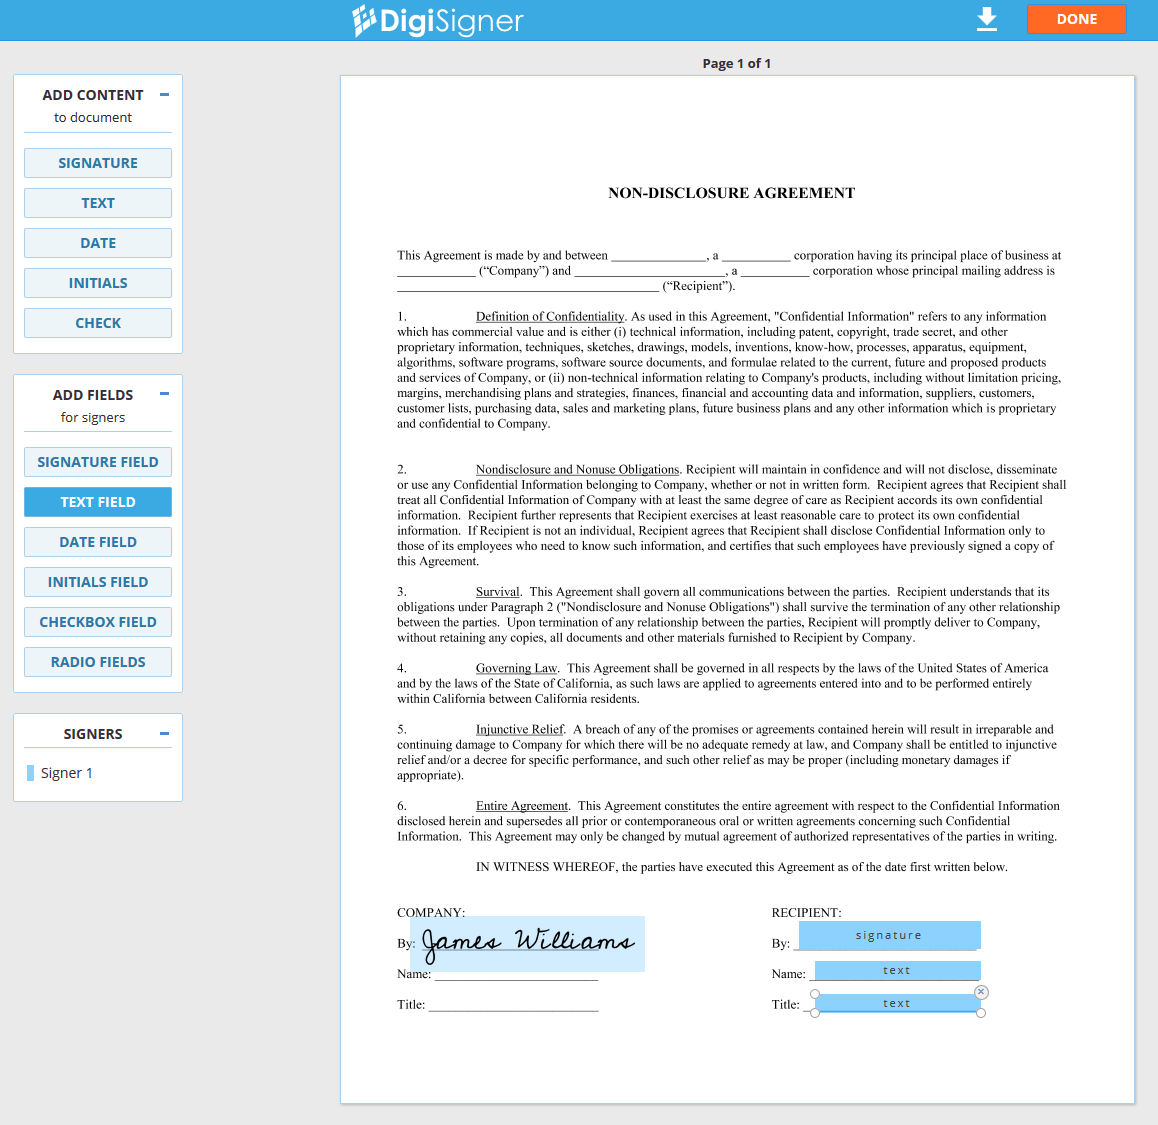 DigiSigner Demo - Add fields to document